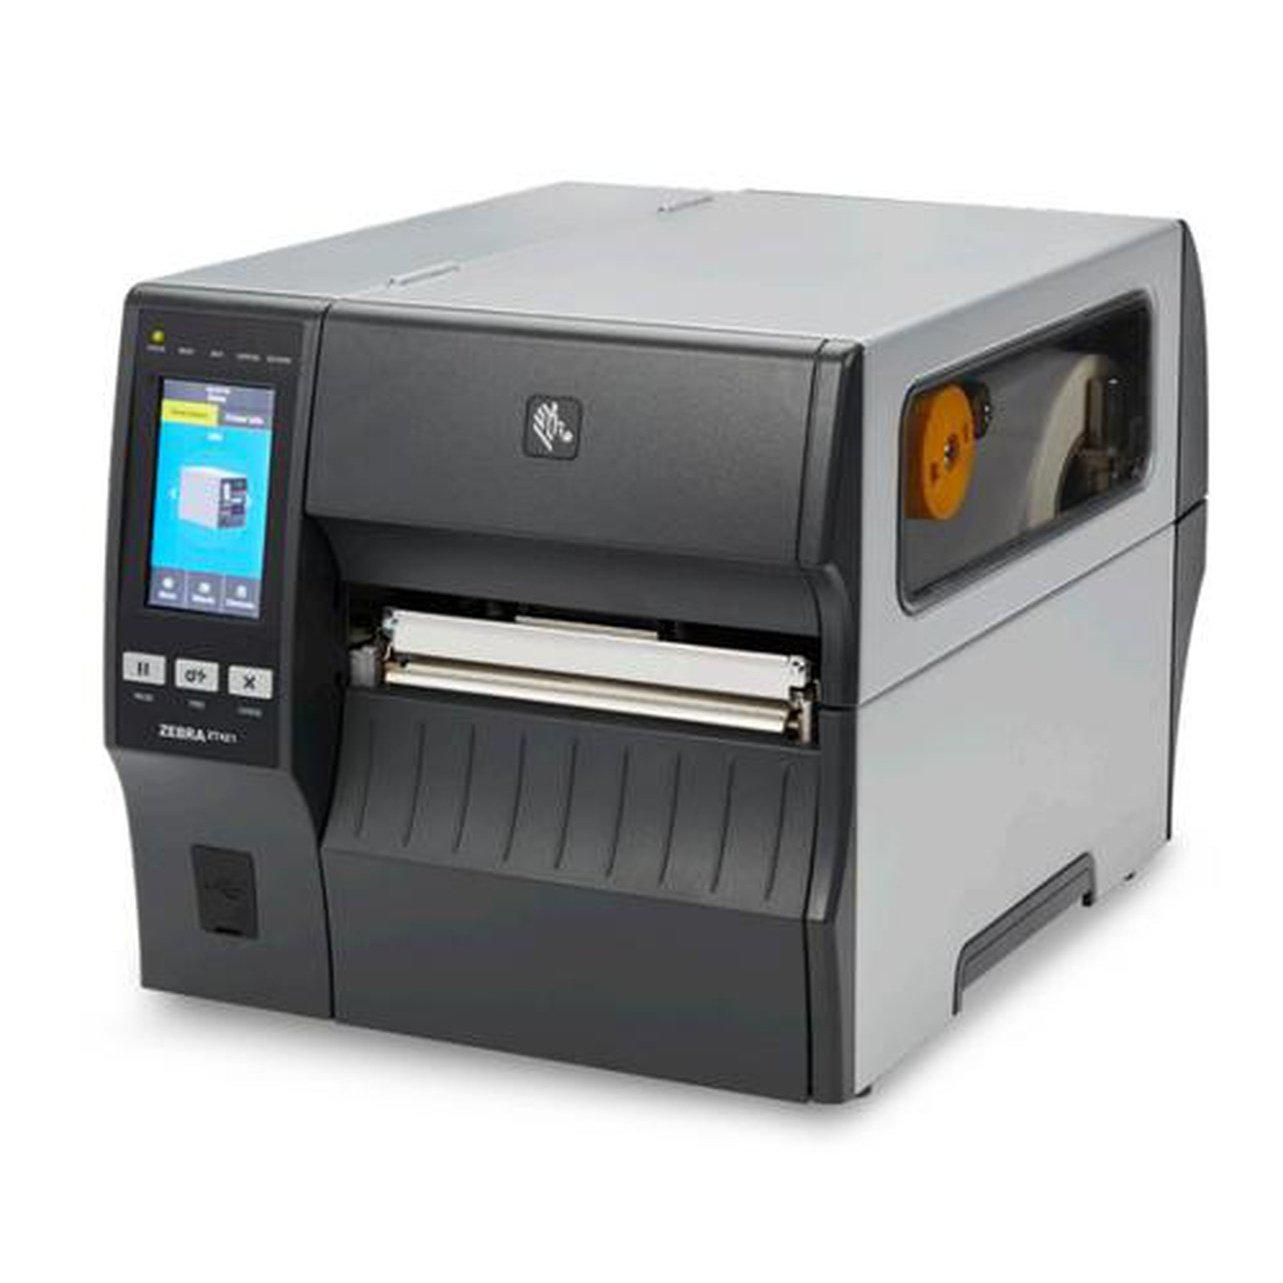 Zebra ZT421 DT / TT Label Printer 203DPI Bluetooth, Ethernet, USB | ZT42162-T0E0000Z Label Printer Zebra